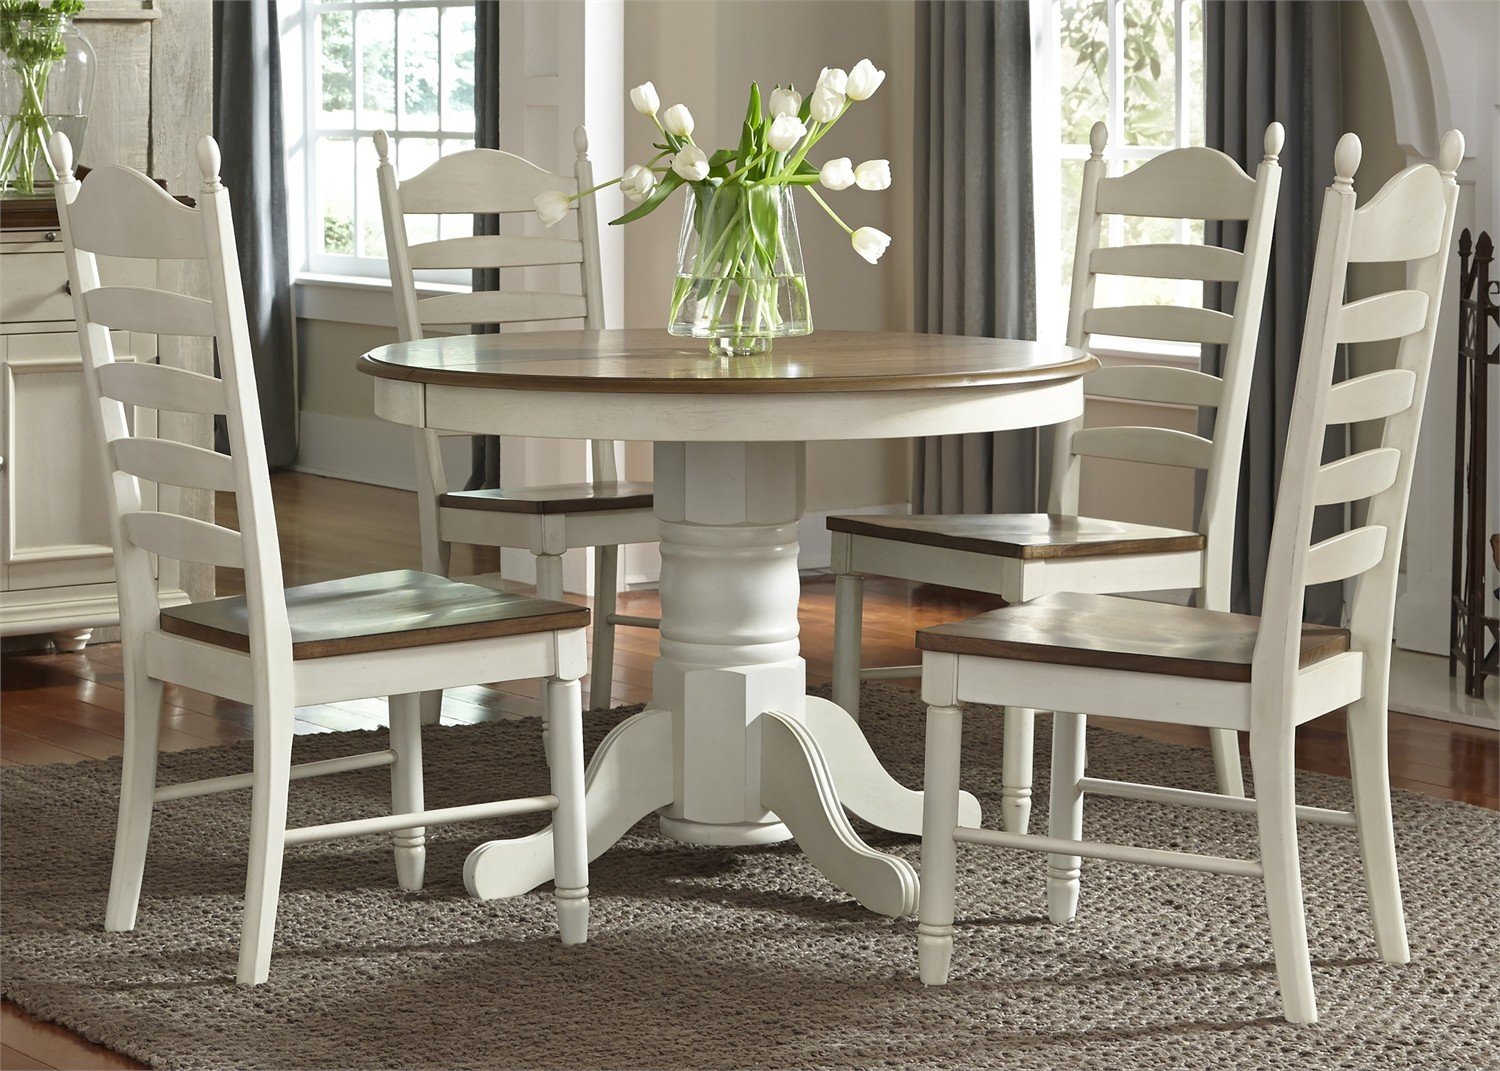 springfield honey and cream extendable pedestal dining room set from liberty coleman furniture. Black Bedroom Furniture Sets. Home Design Ideas